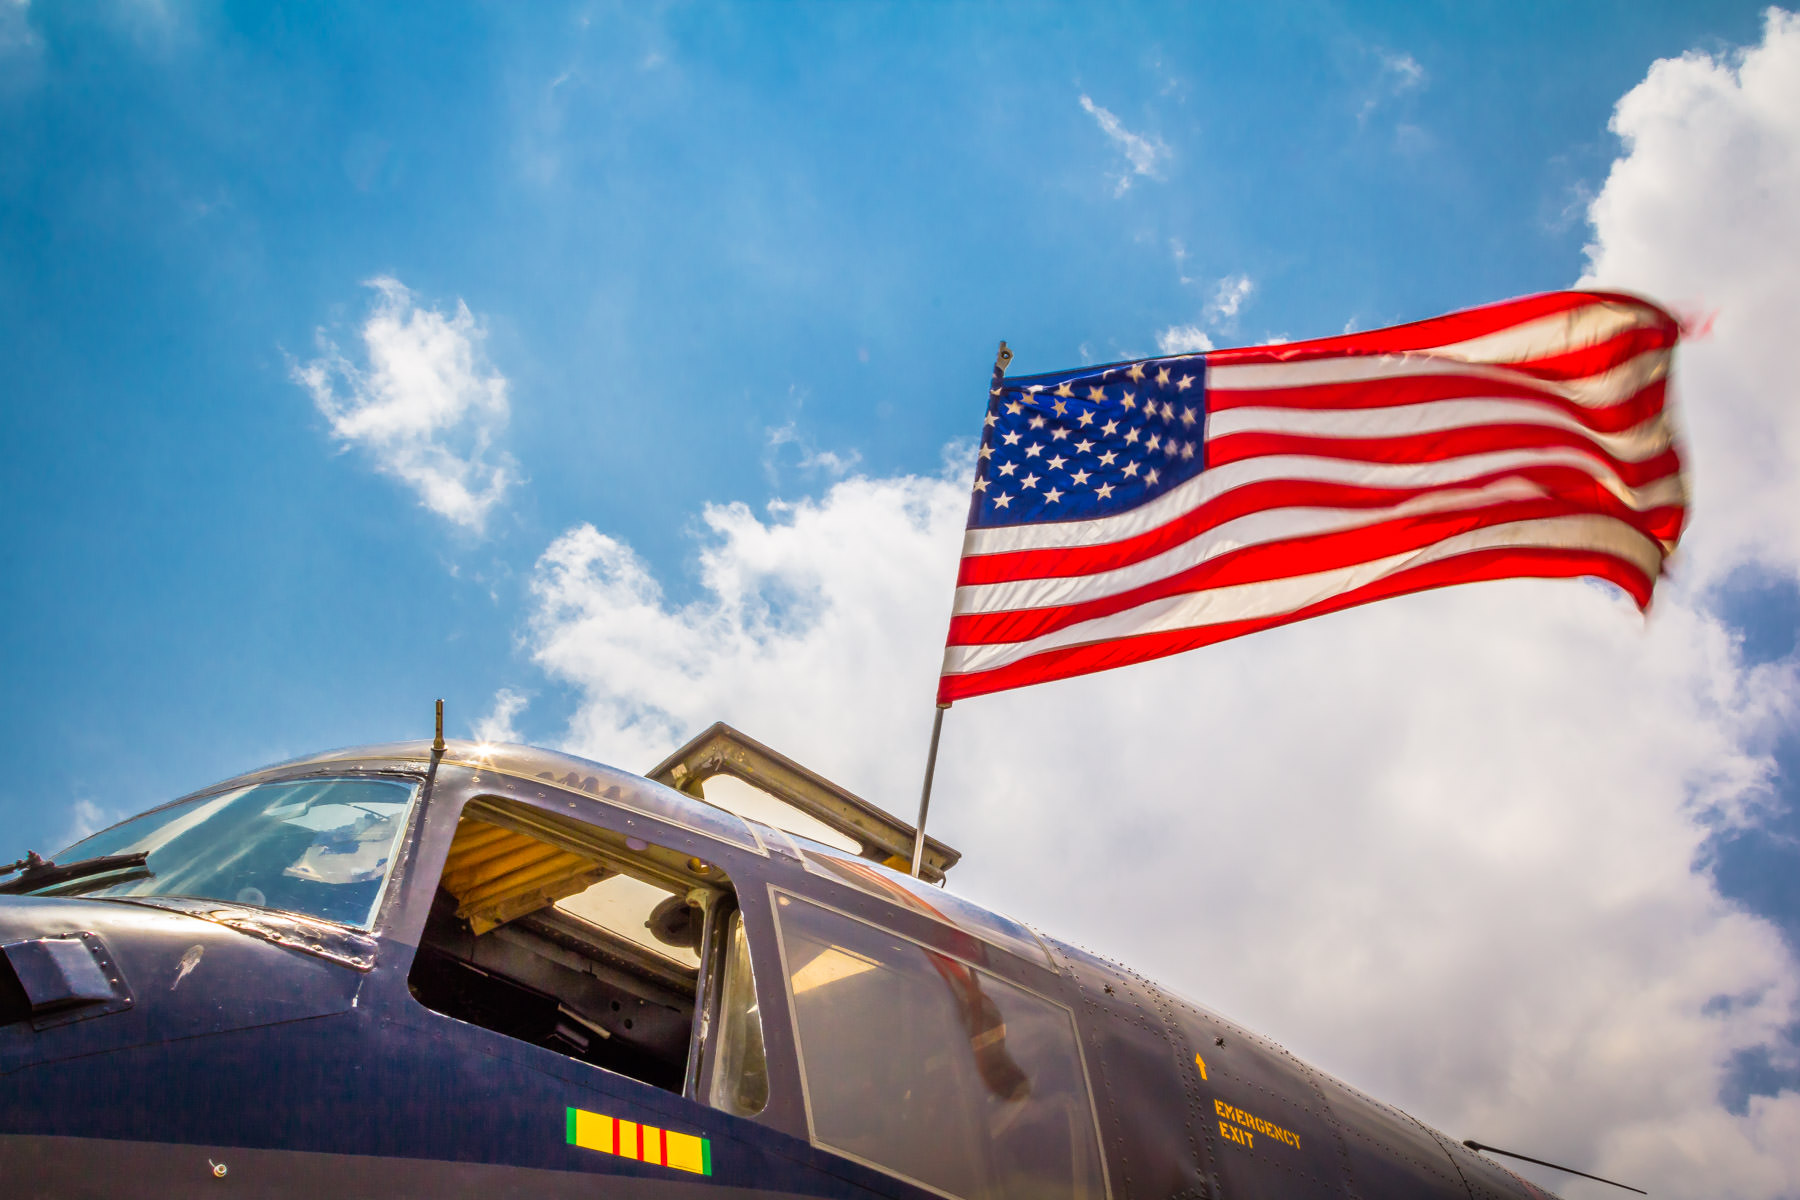 An American flag flies on an U.S. Army de Havilland Canada DHC-4 Caribou at the Cavanaugh Flight Museum, Addison, Texas.